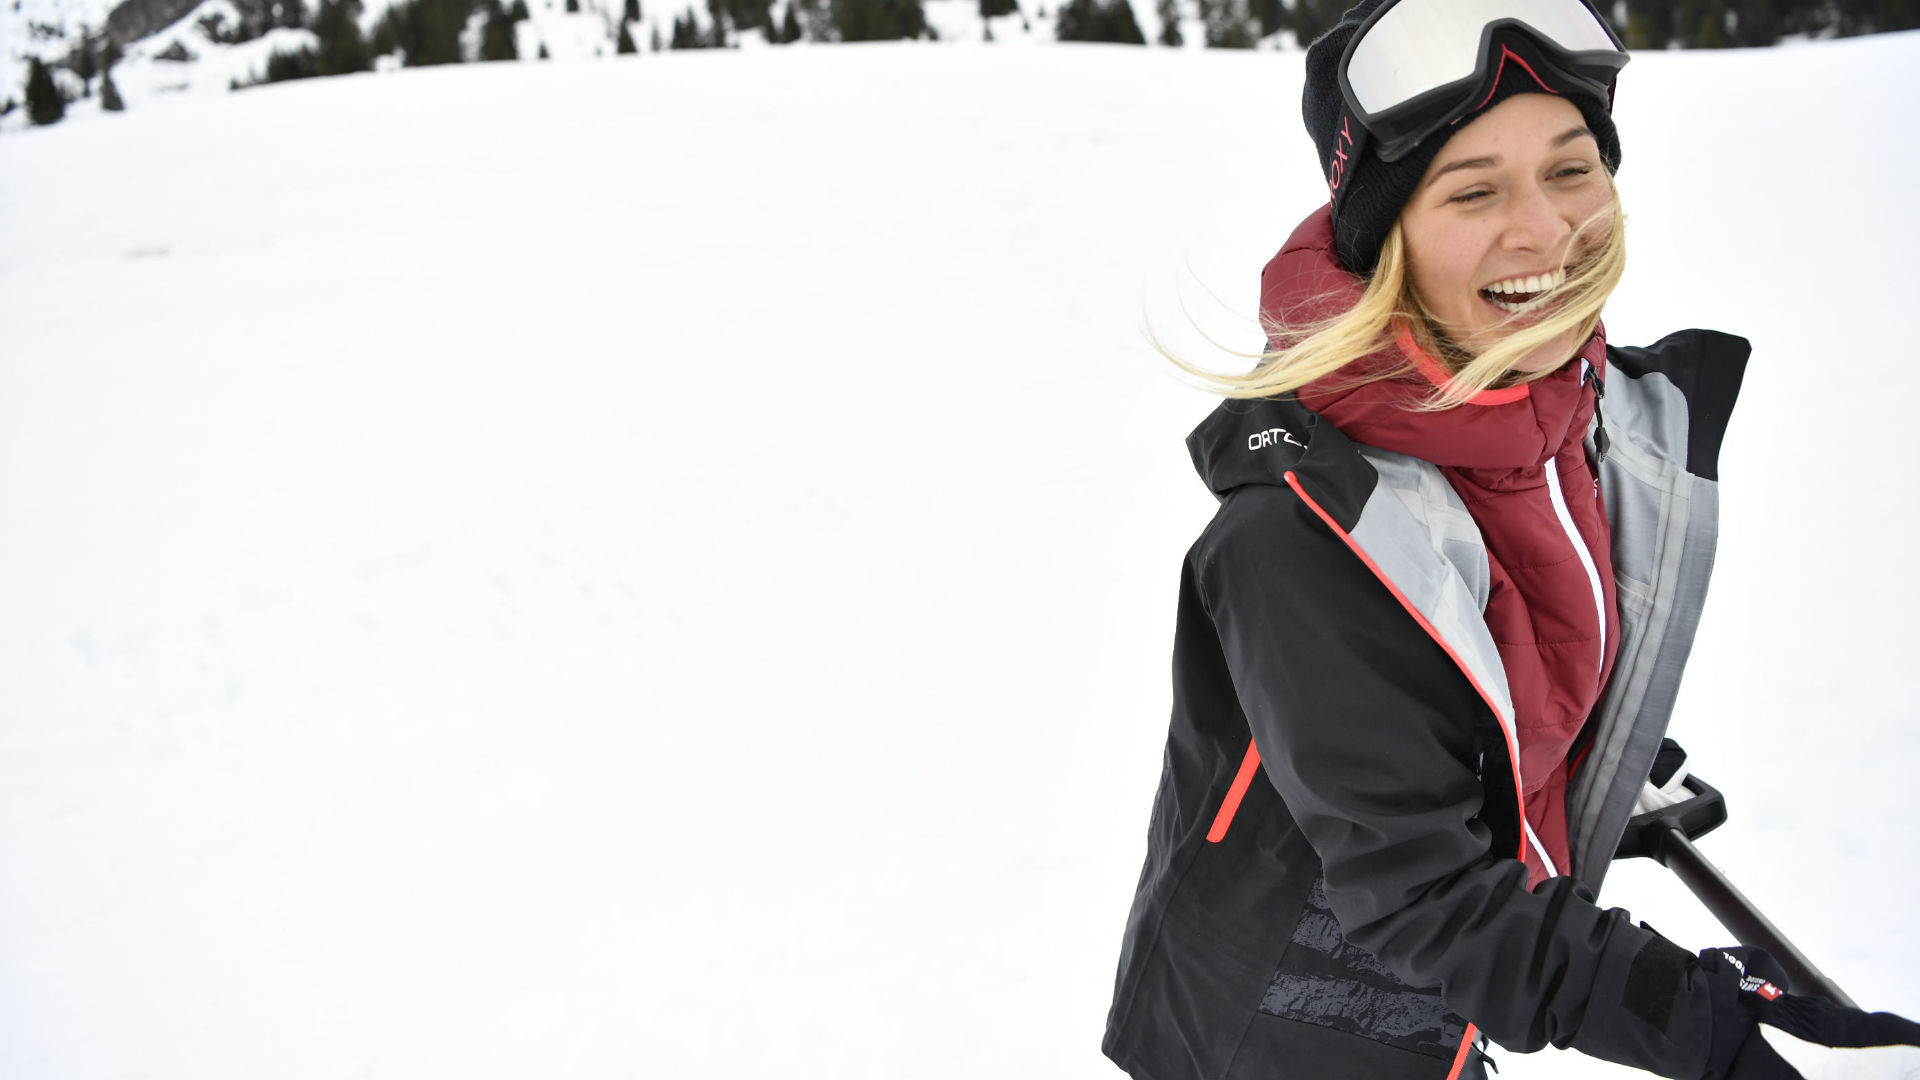 female snowboarder shoveling snow in the mountain with a shell jacket